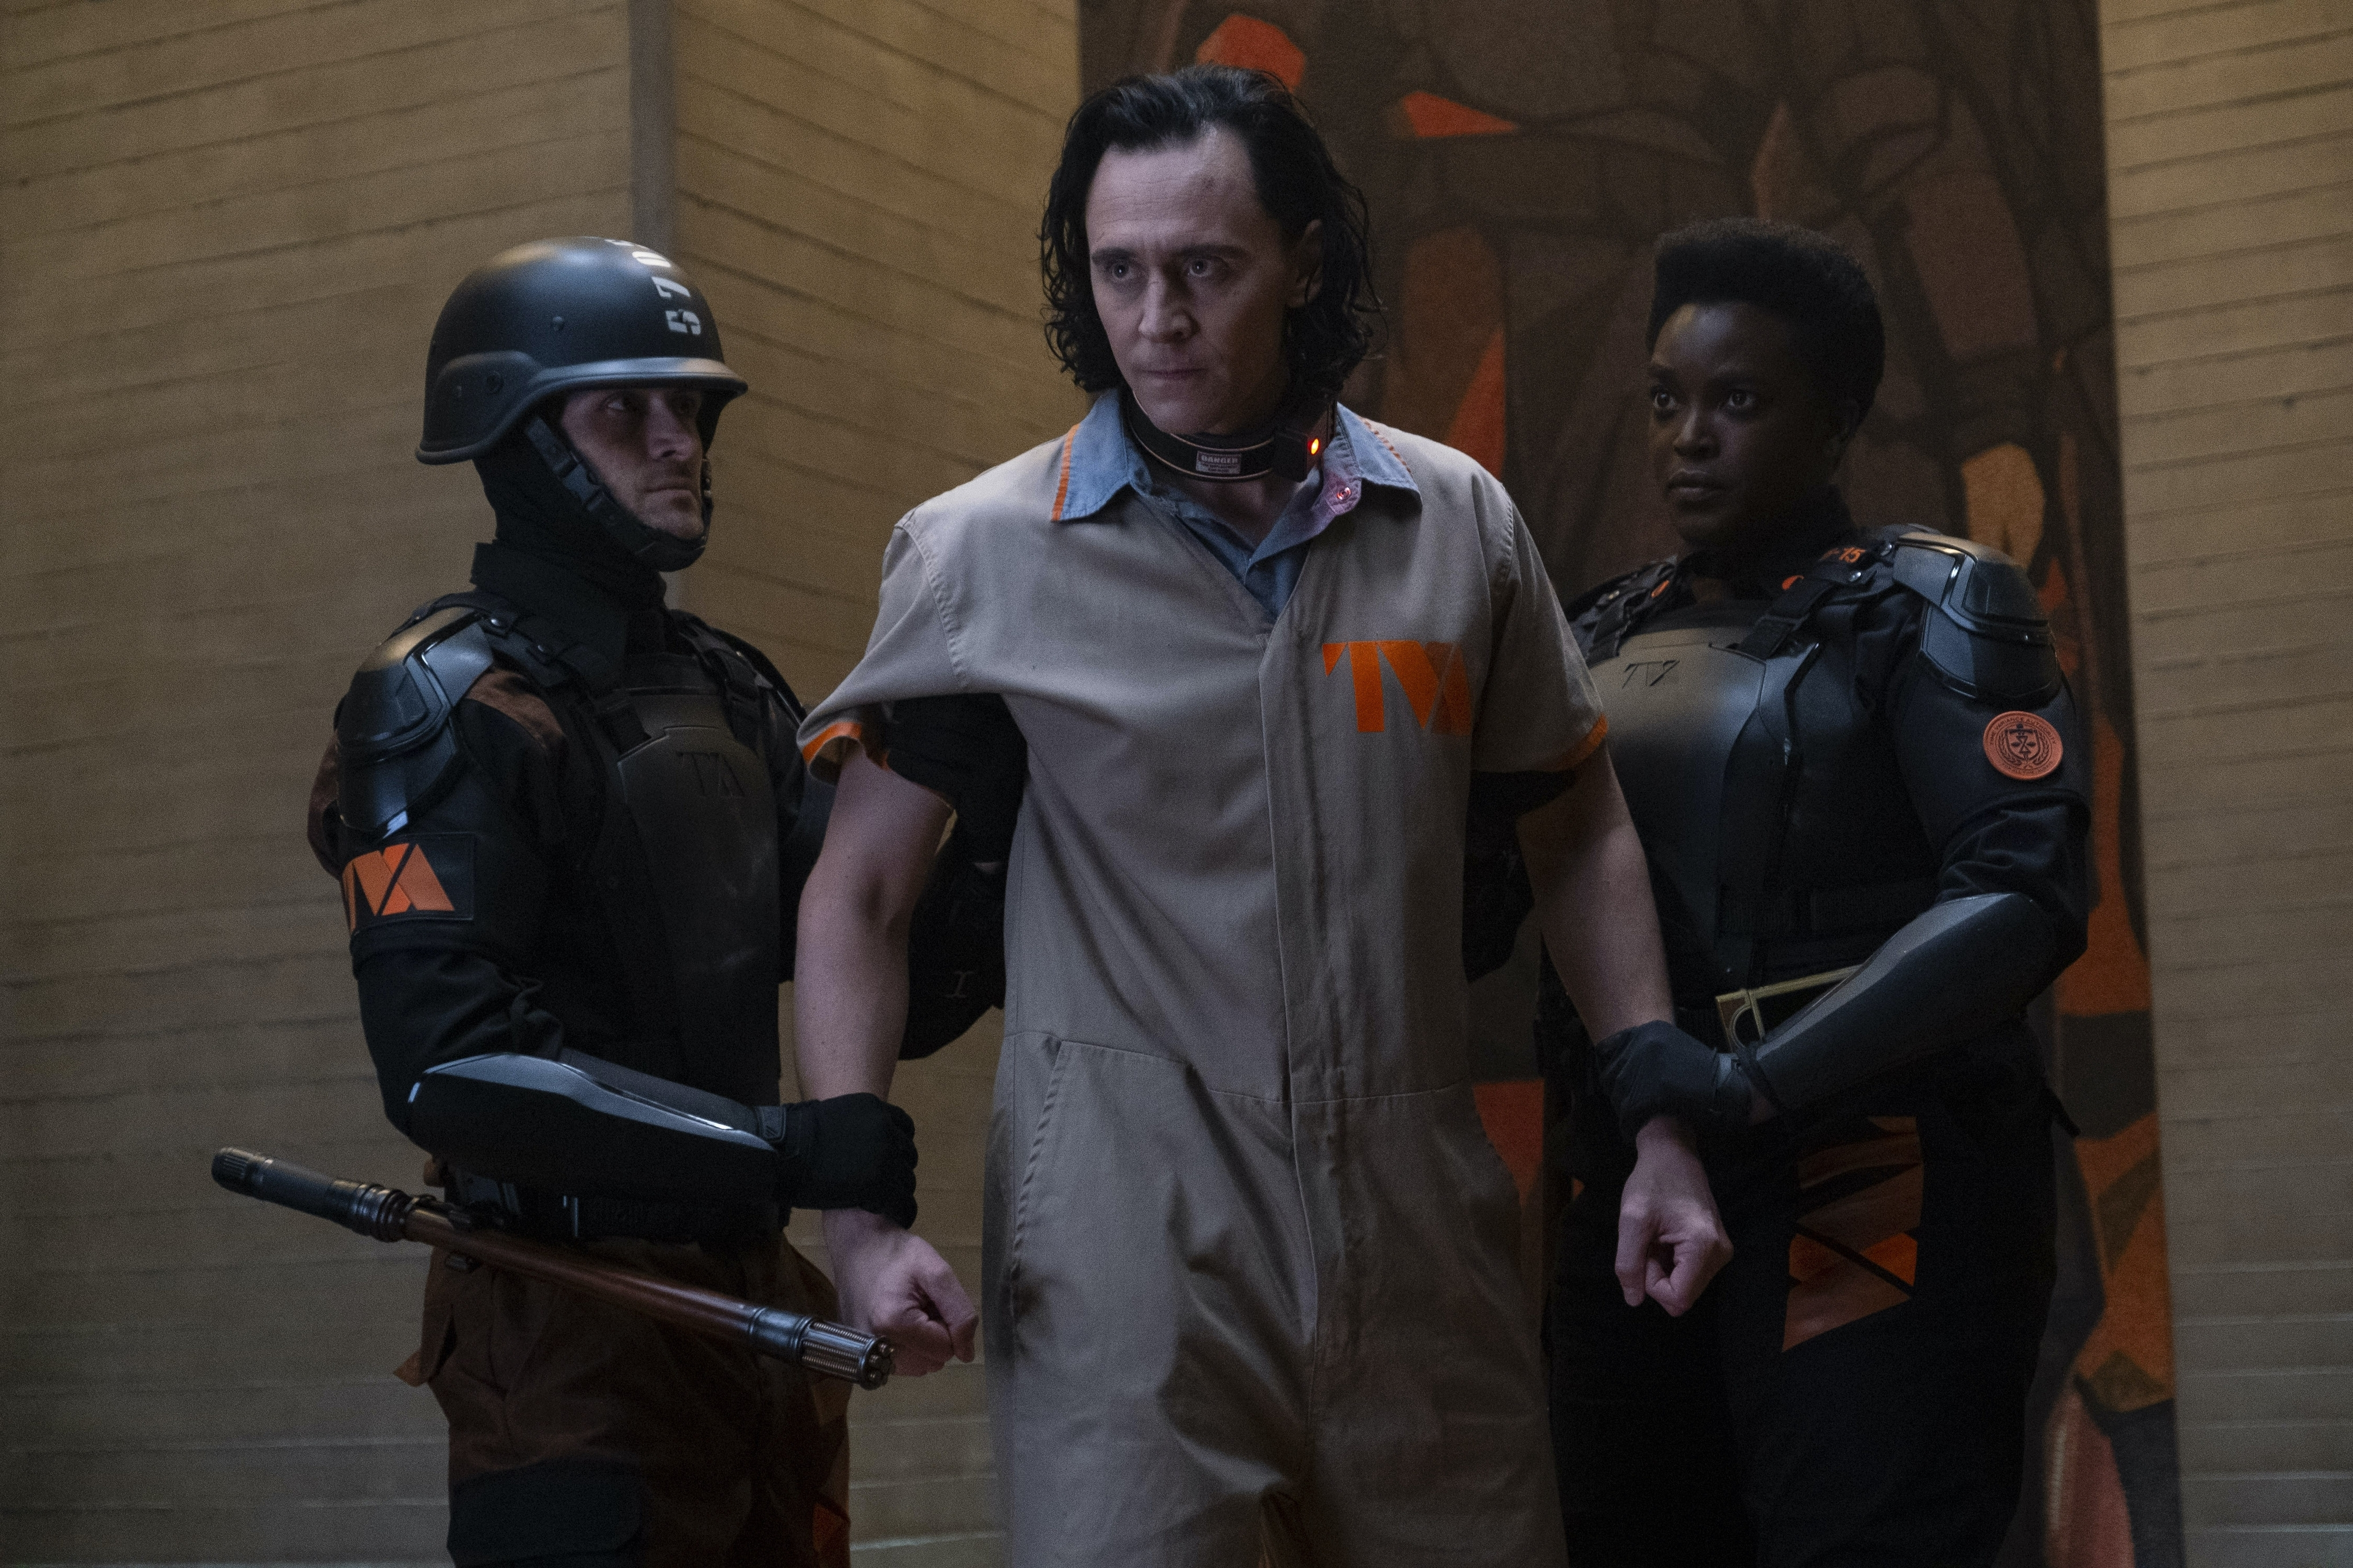 Tom Hidddleston as Loki being restrained by a guard on either side.